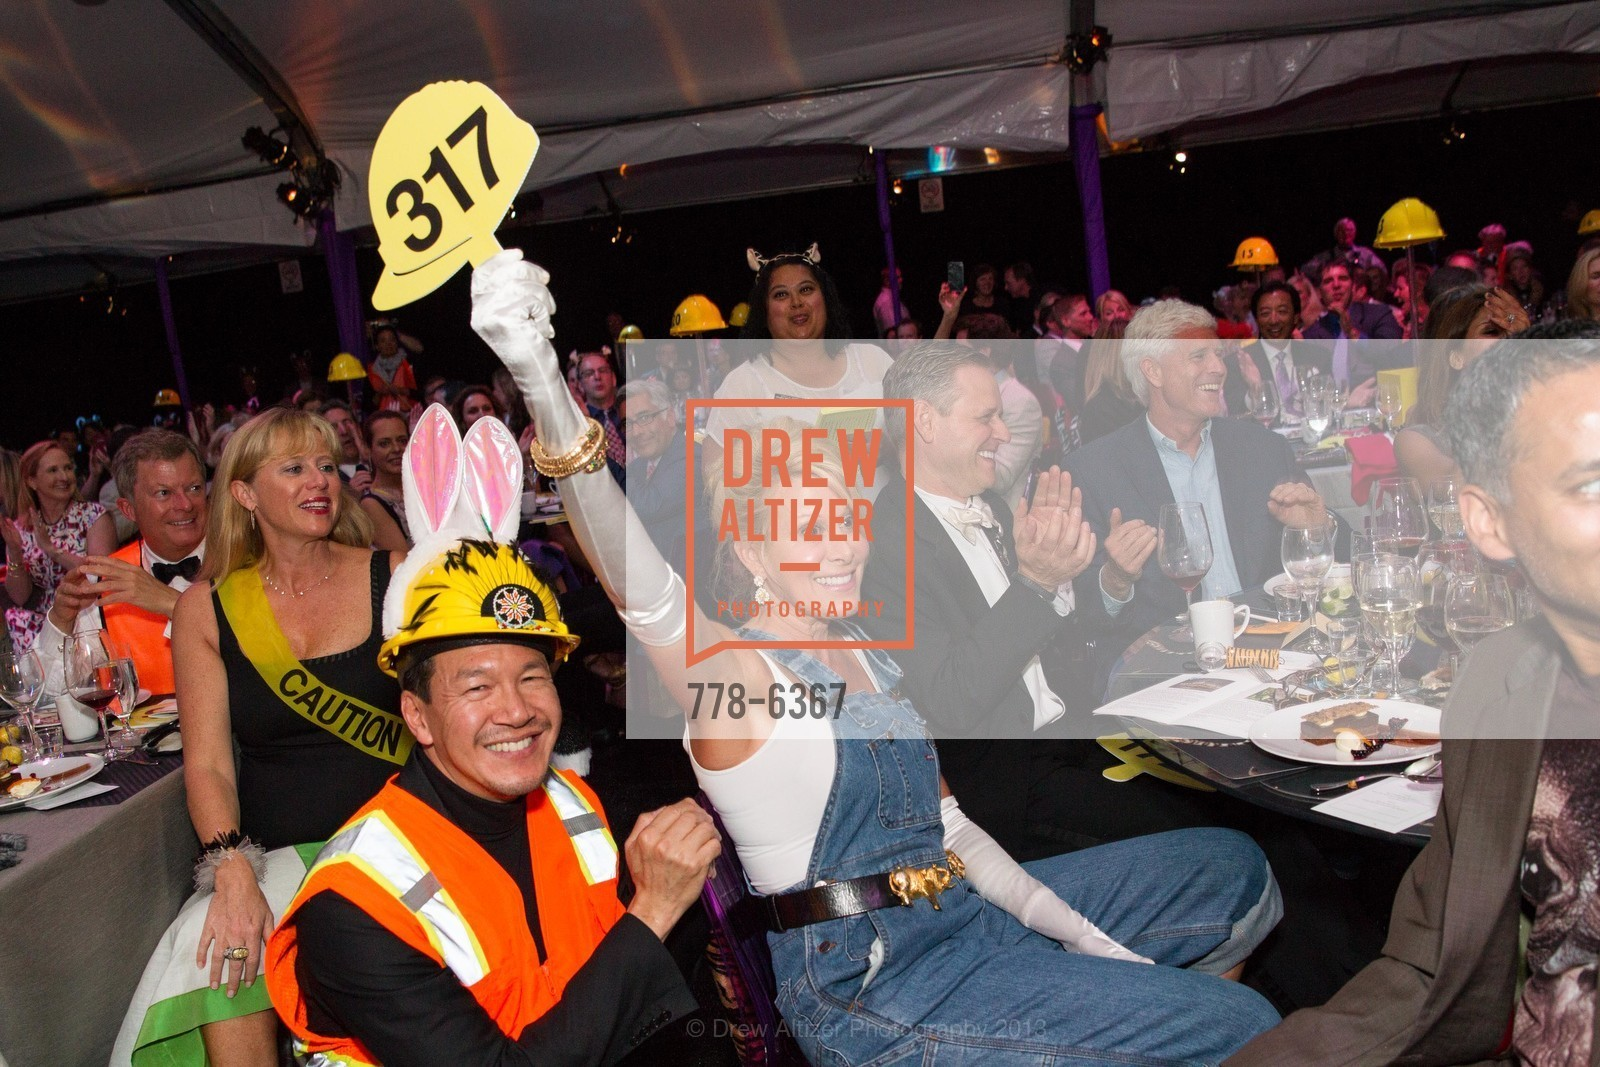 Tim Wu, Jillian Manus, Jeff Clarke, ZooFest 2013 Hard Hat & Tails, US, May 11th, 2013,Drew Altizer, Drew Altizer Photography, full-service agency, private events, San Francisco photographer, photographer california